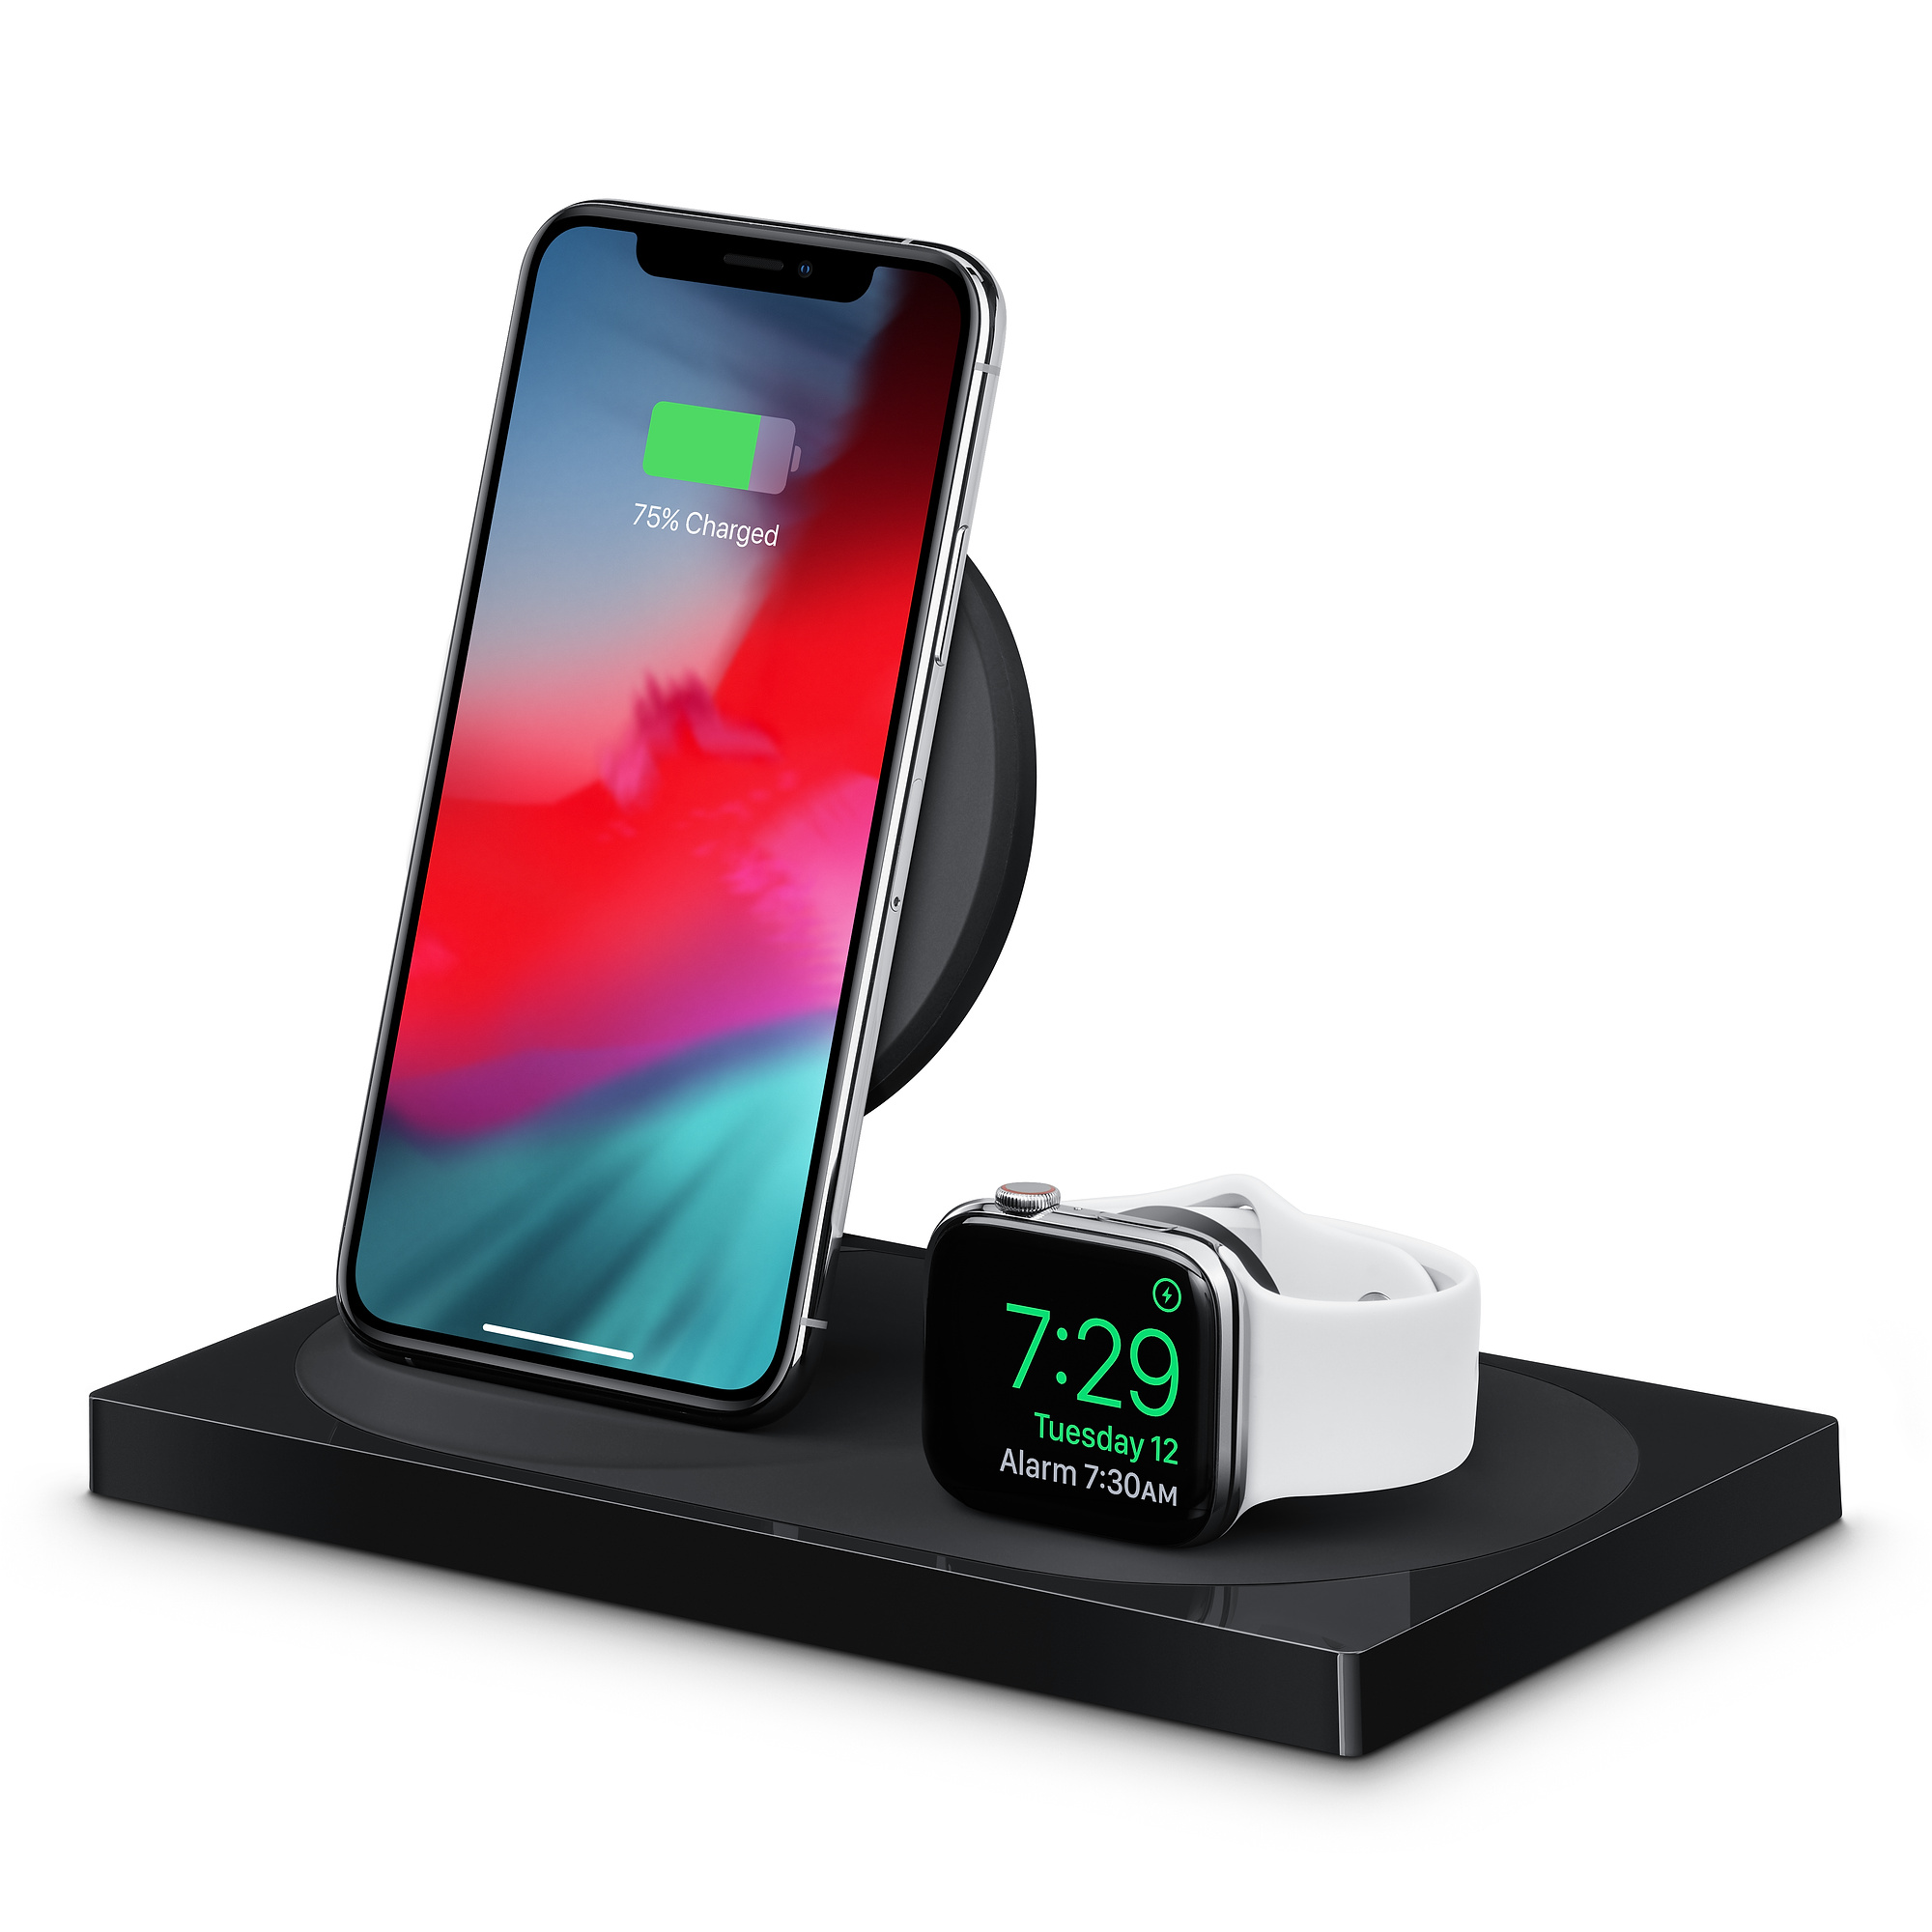 Voorkant van Belkin Boost Up dock voor iPhone en Apple Watch.